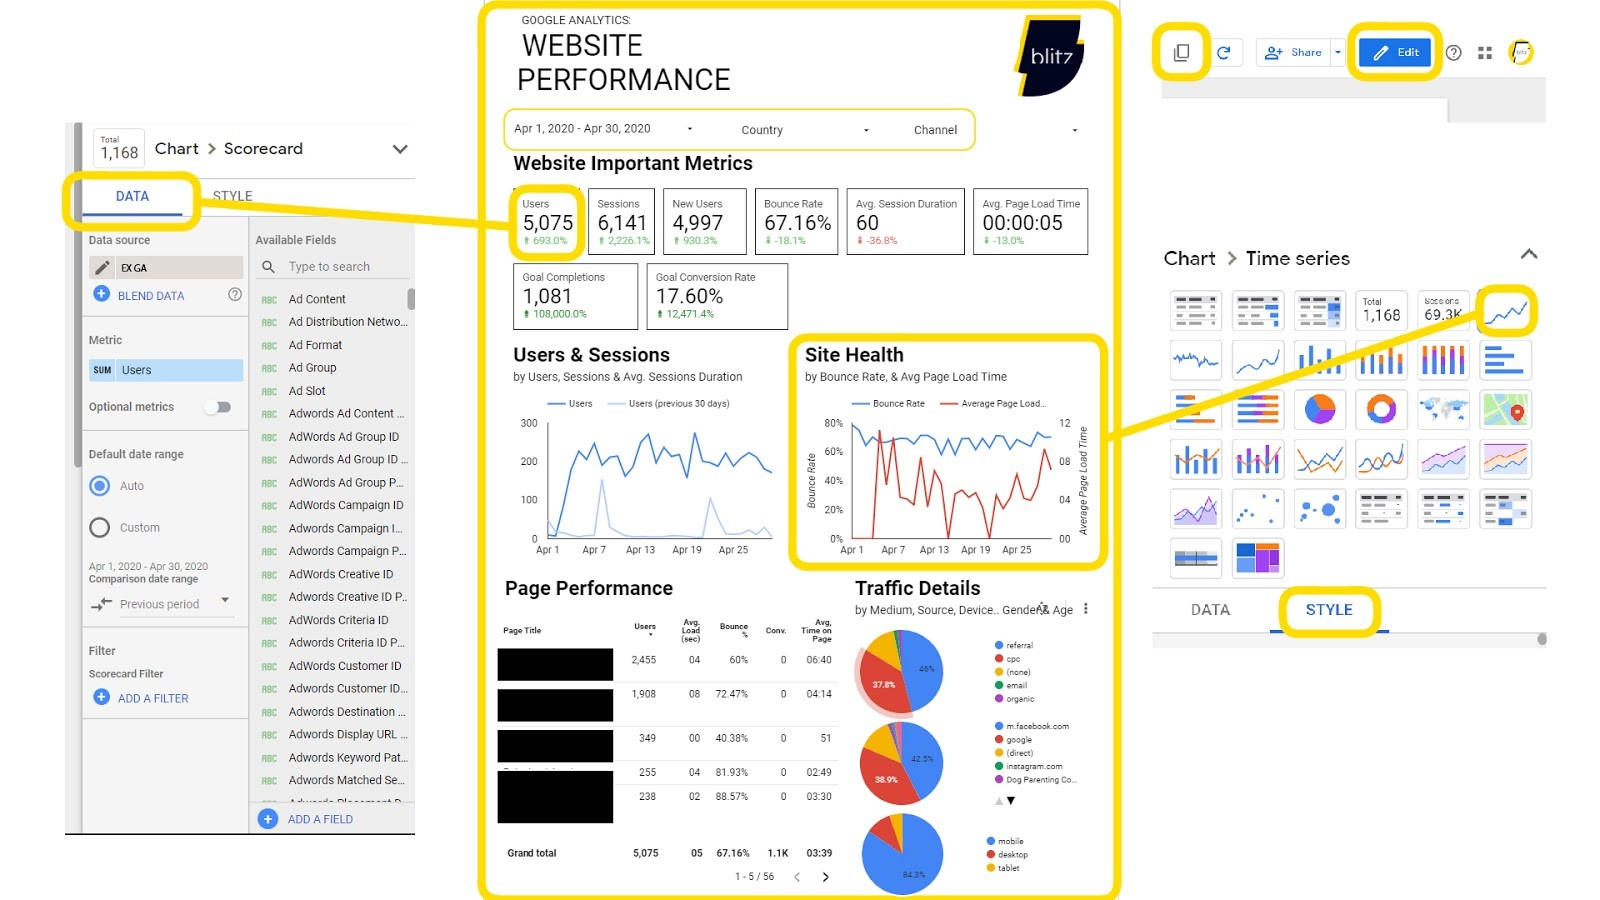 Image of the website performance page in a Google Data Studio report